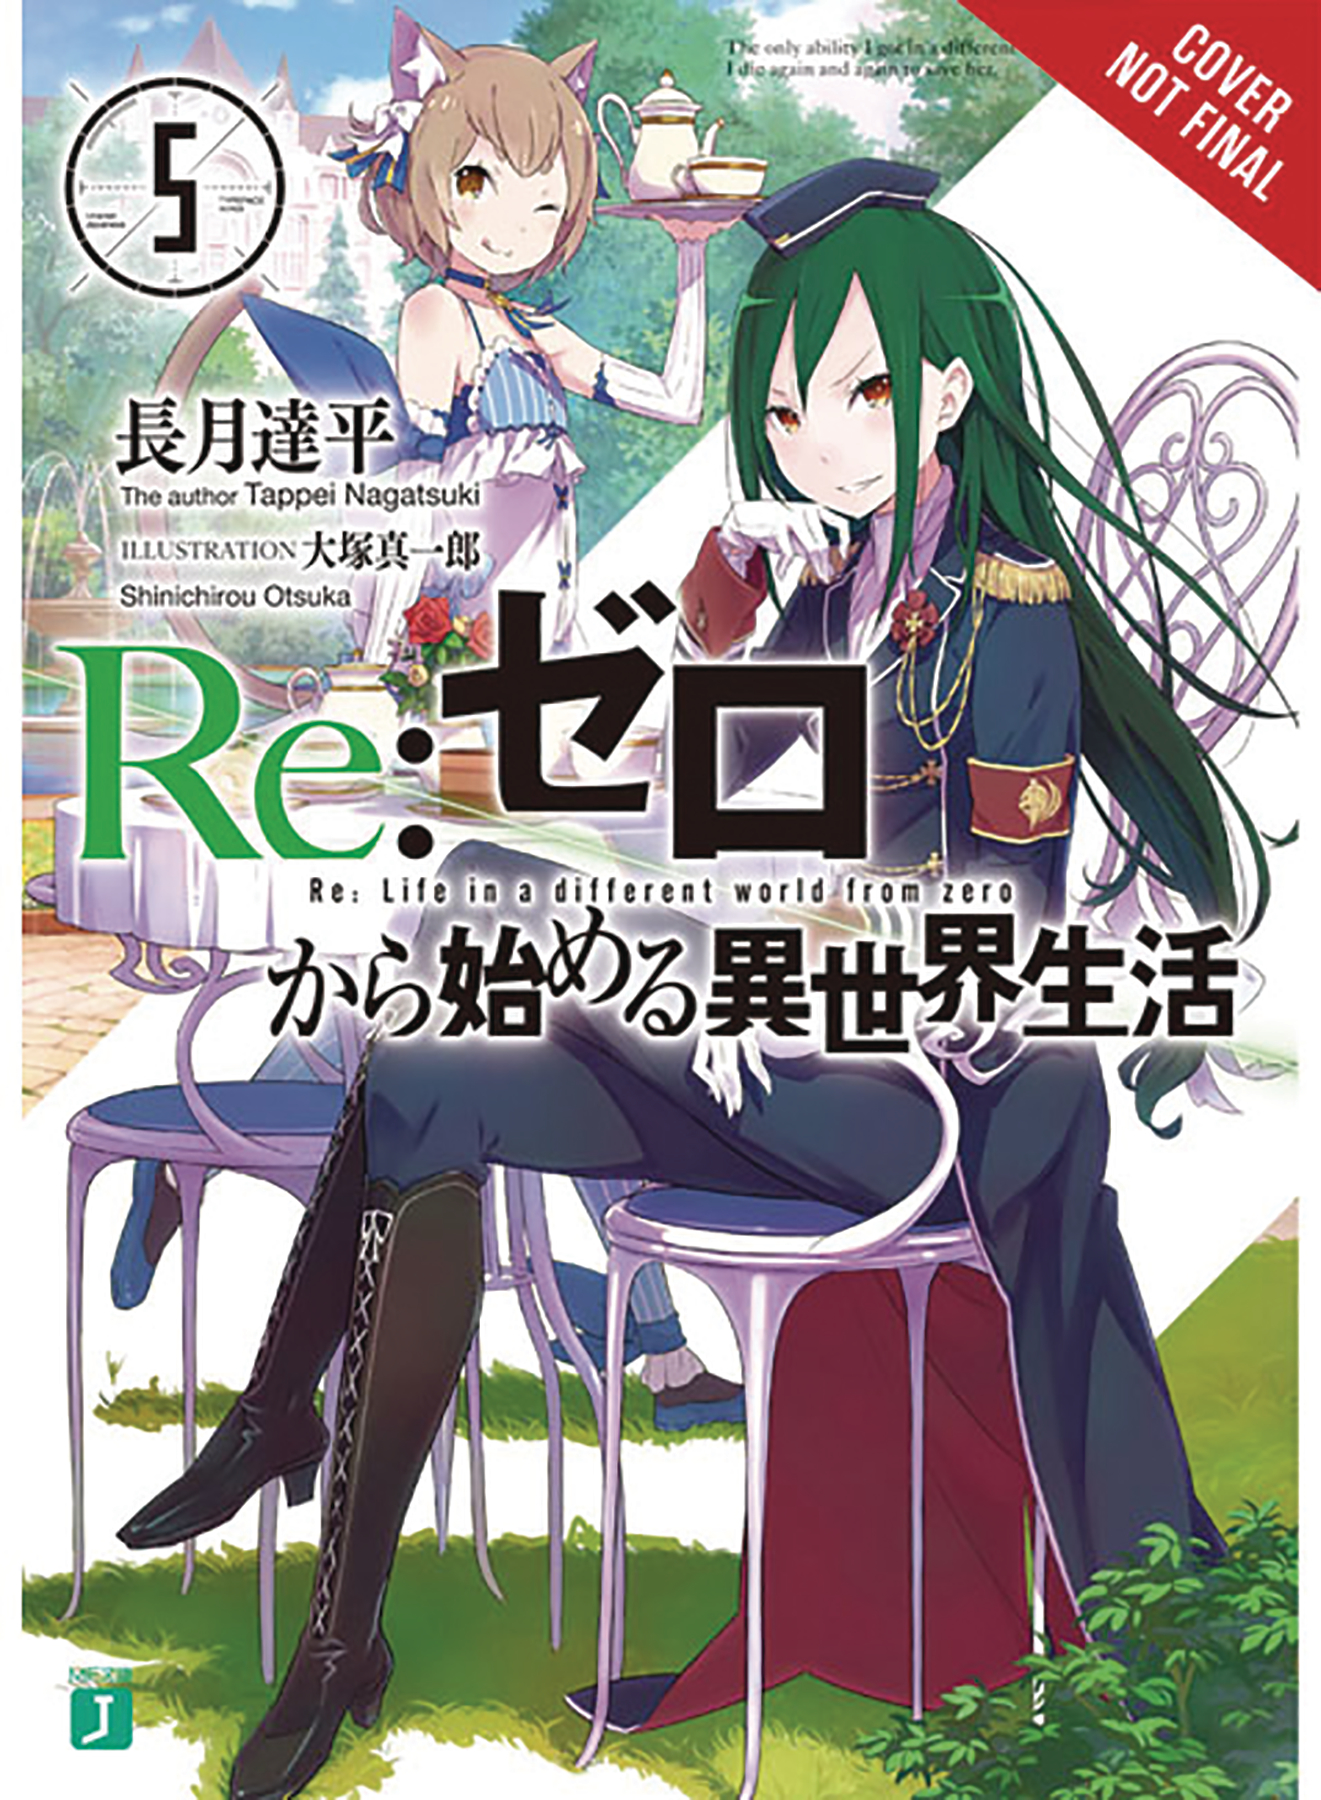 RE ZERO SLIAW LIGHT NOVEL SC VOL 05 STARTING LIFE ANOTHER WO